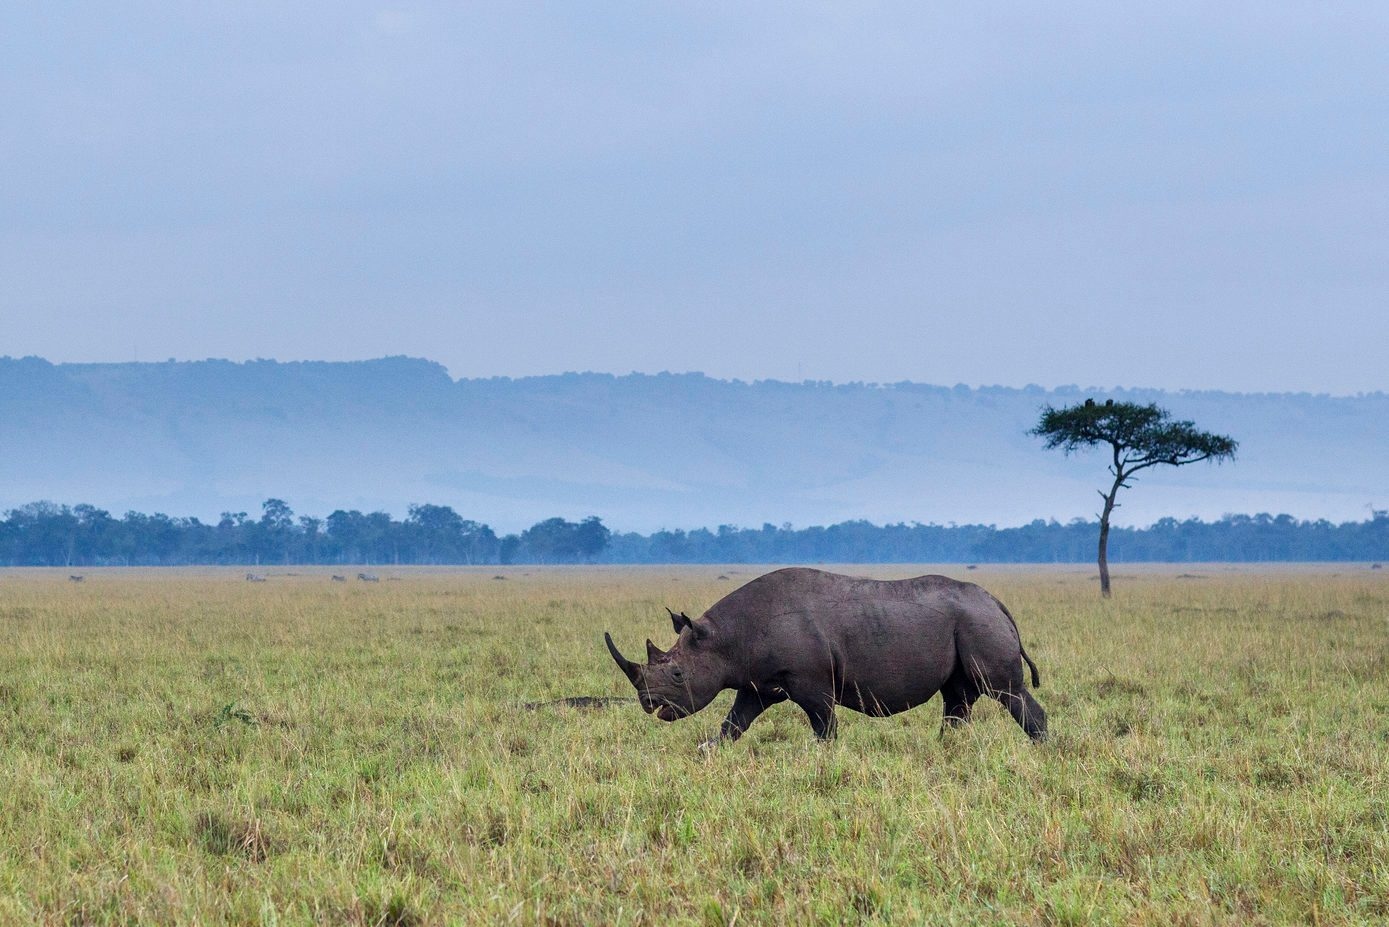 Black rhinoceros walking